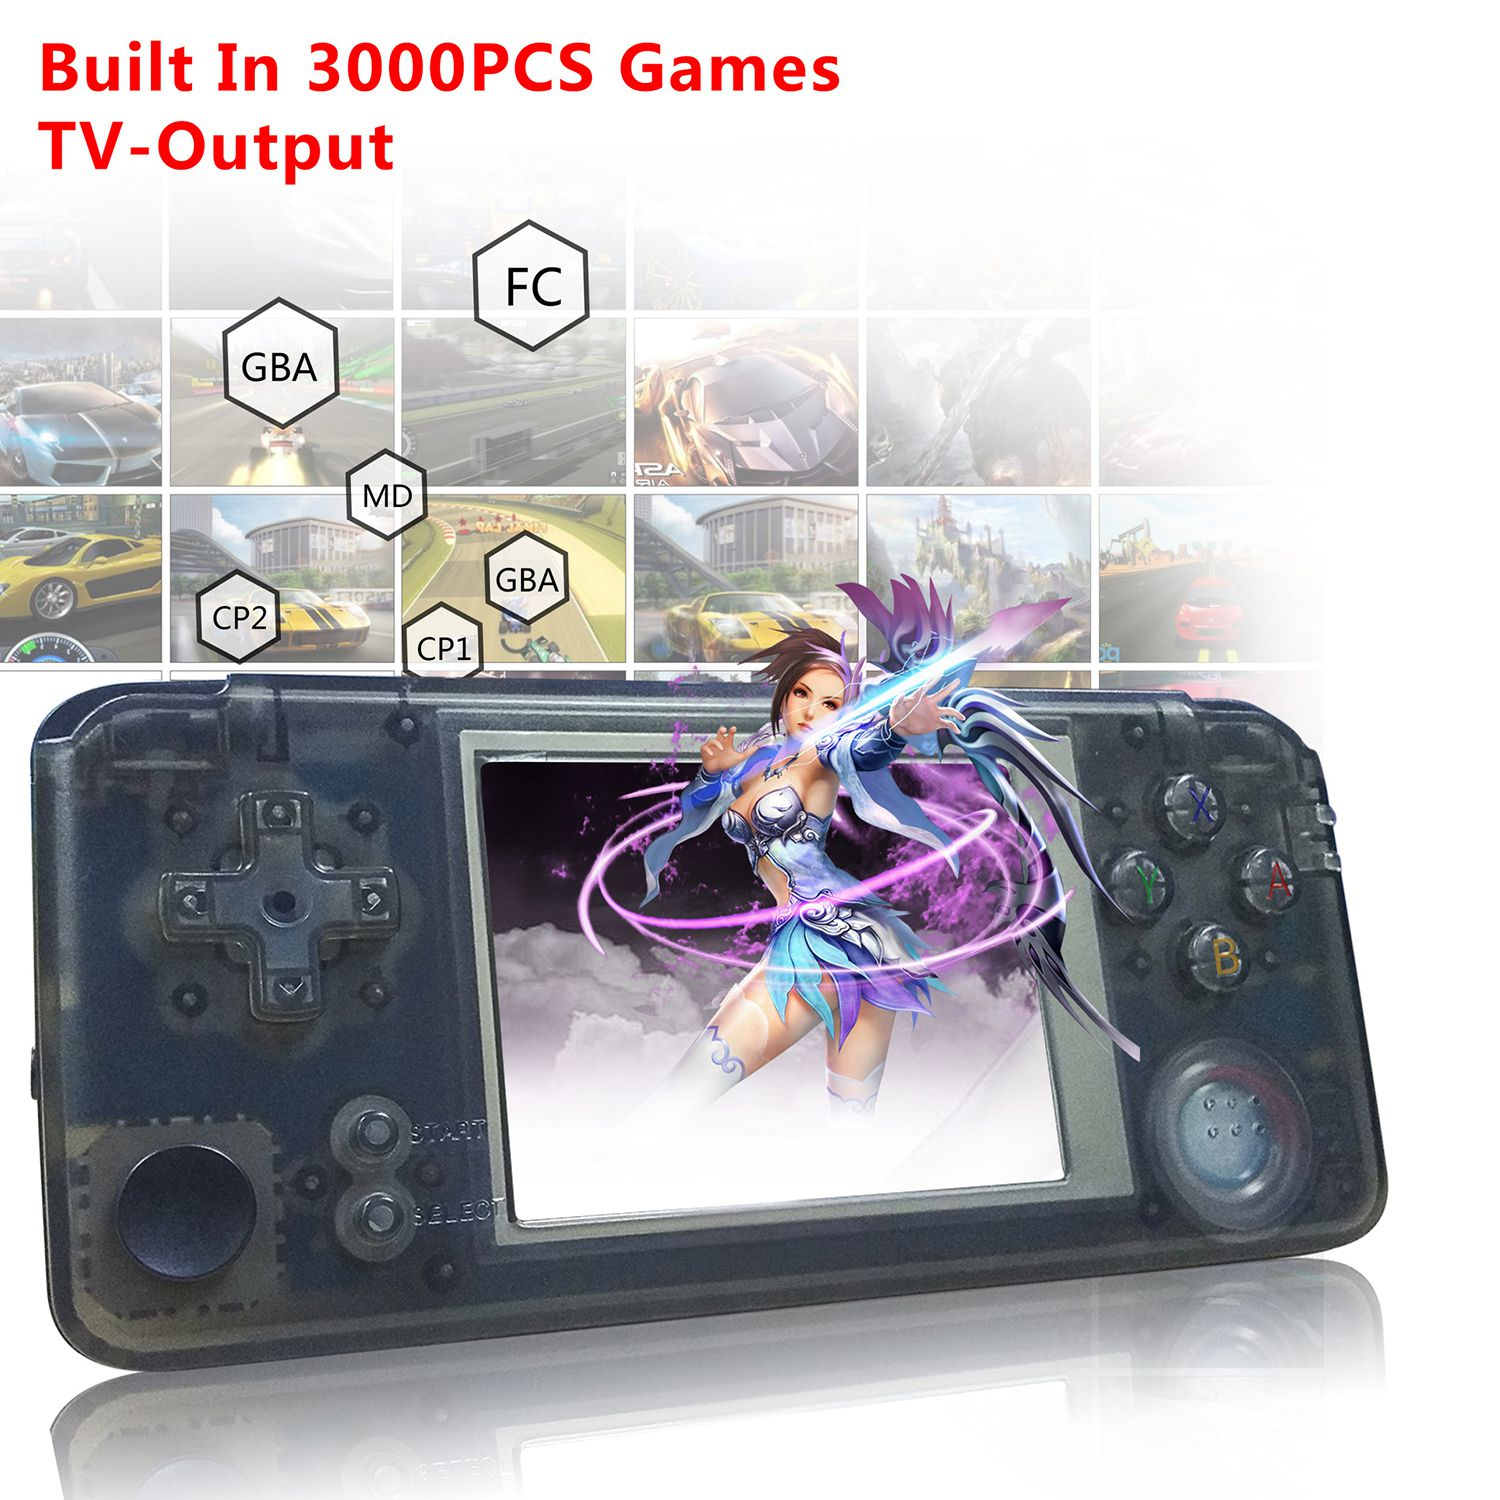 Powkiddy Retro Handheld Game Console 16GB 3inch Portable Mini Video Gaming Players Built-in 3000 Games With 360 Degree ControlPowkiddy Retro Handheld Game Console 16GB 3inch Portable Mini Video Gaming Players Built-in 3000 Games With 360 Degree Control